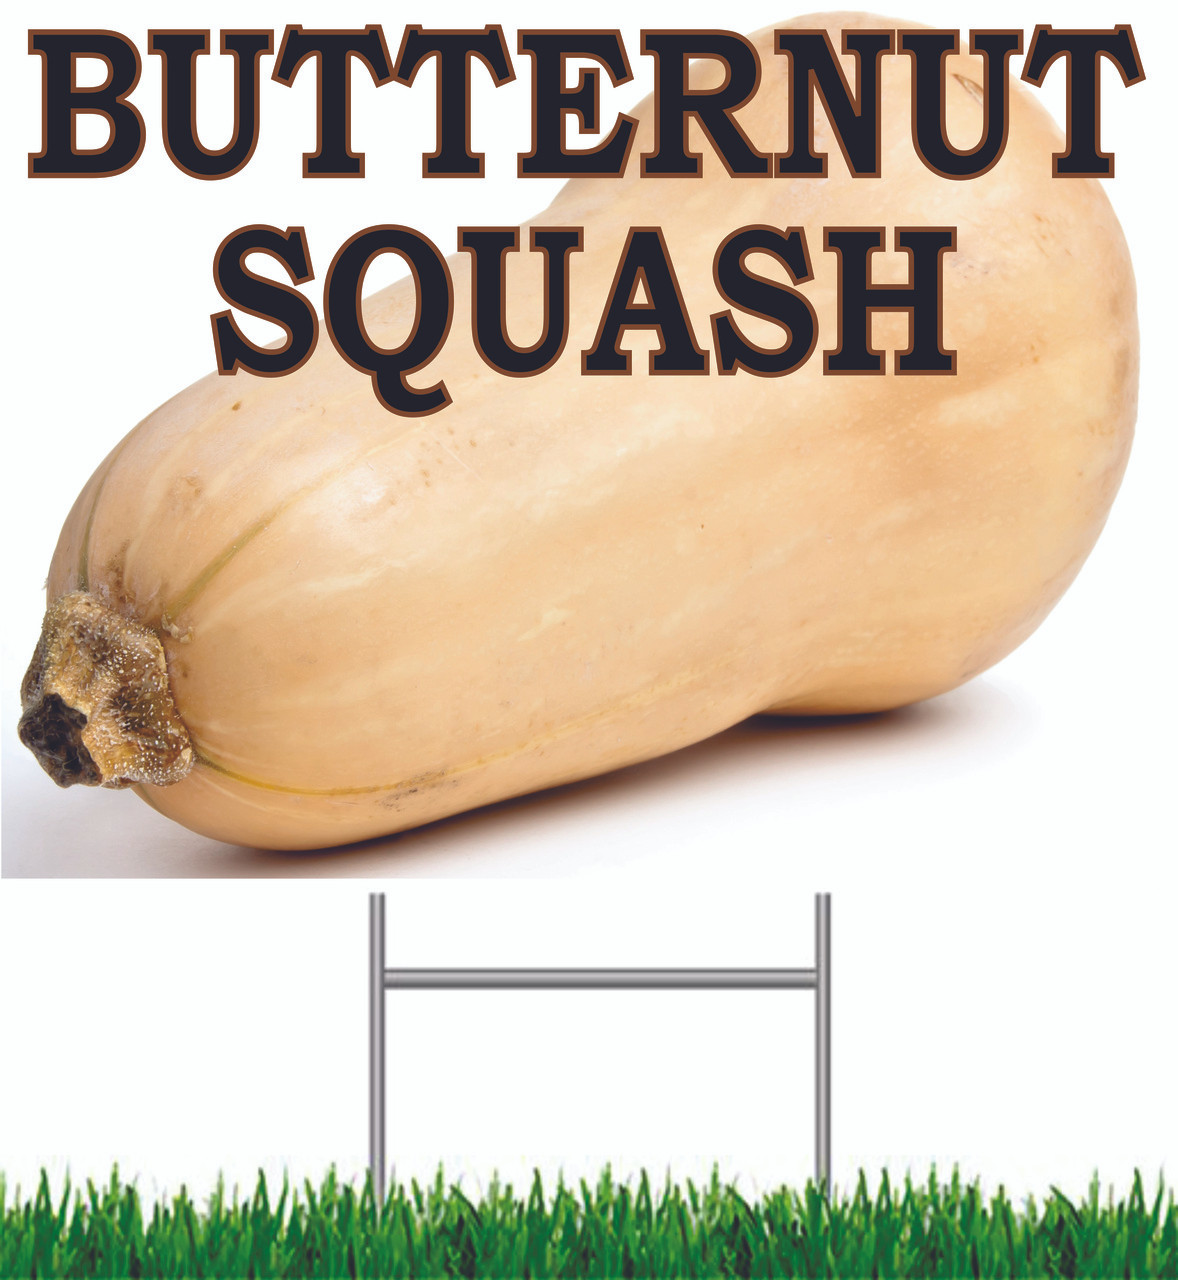 Butternut Squash Yard Sign is a sign that always gets noticed.